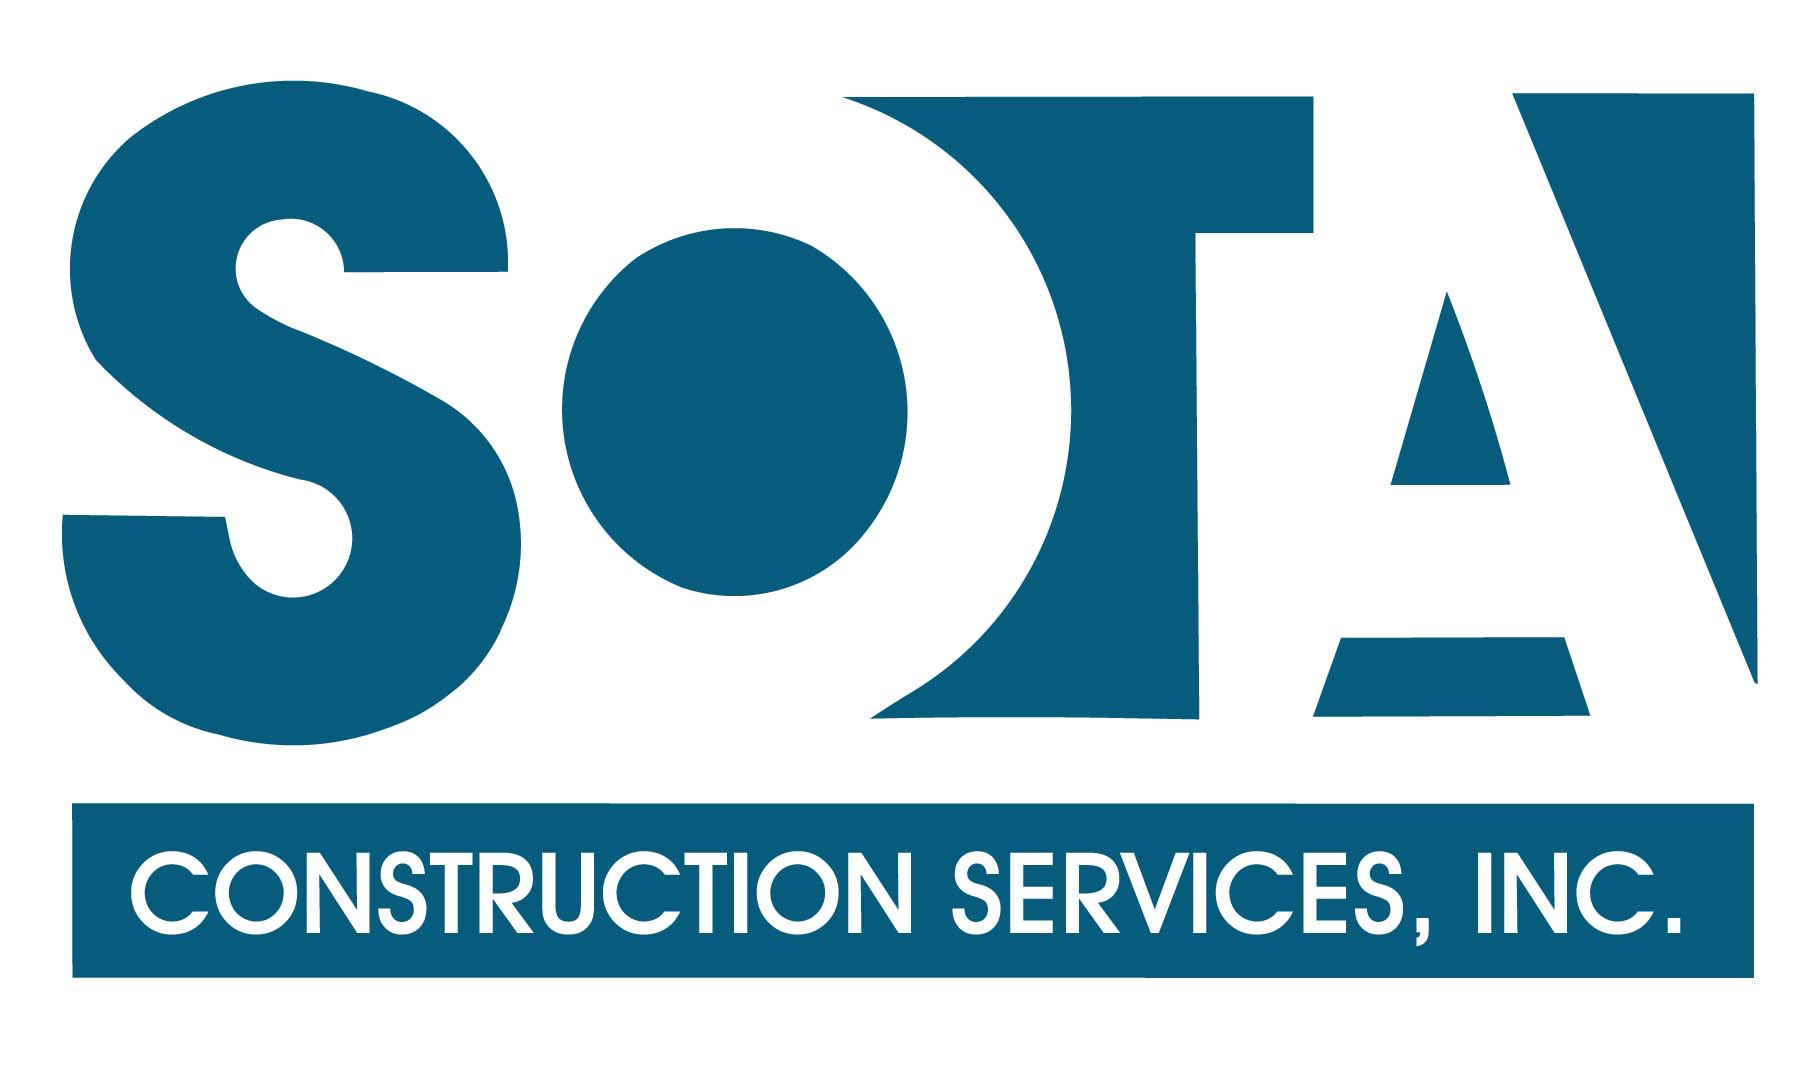 Sota Construction Services